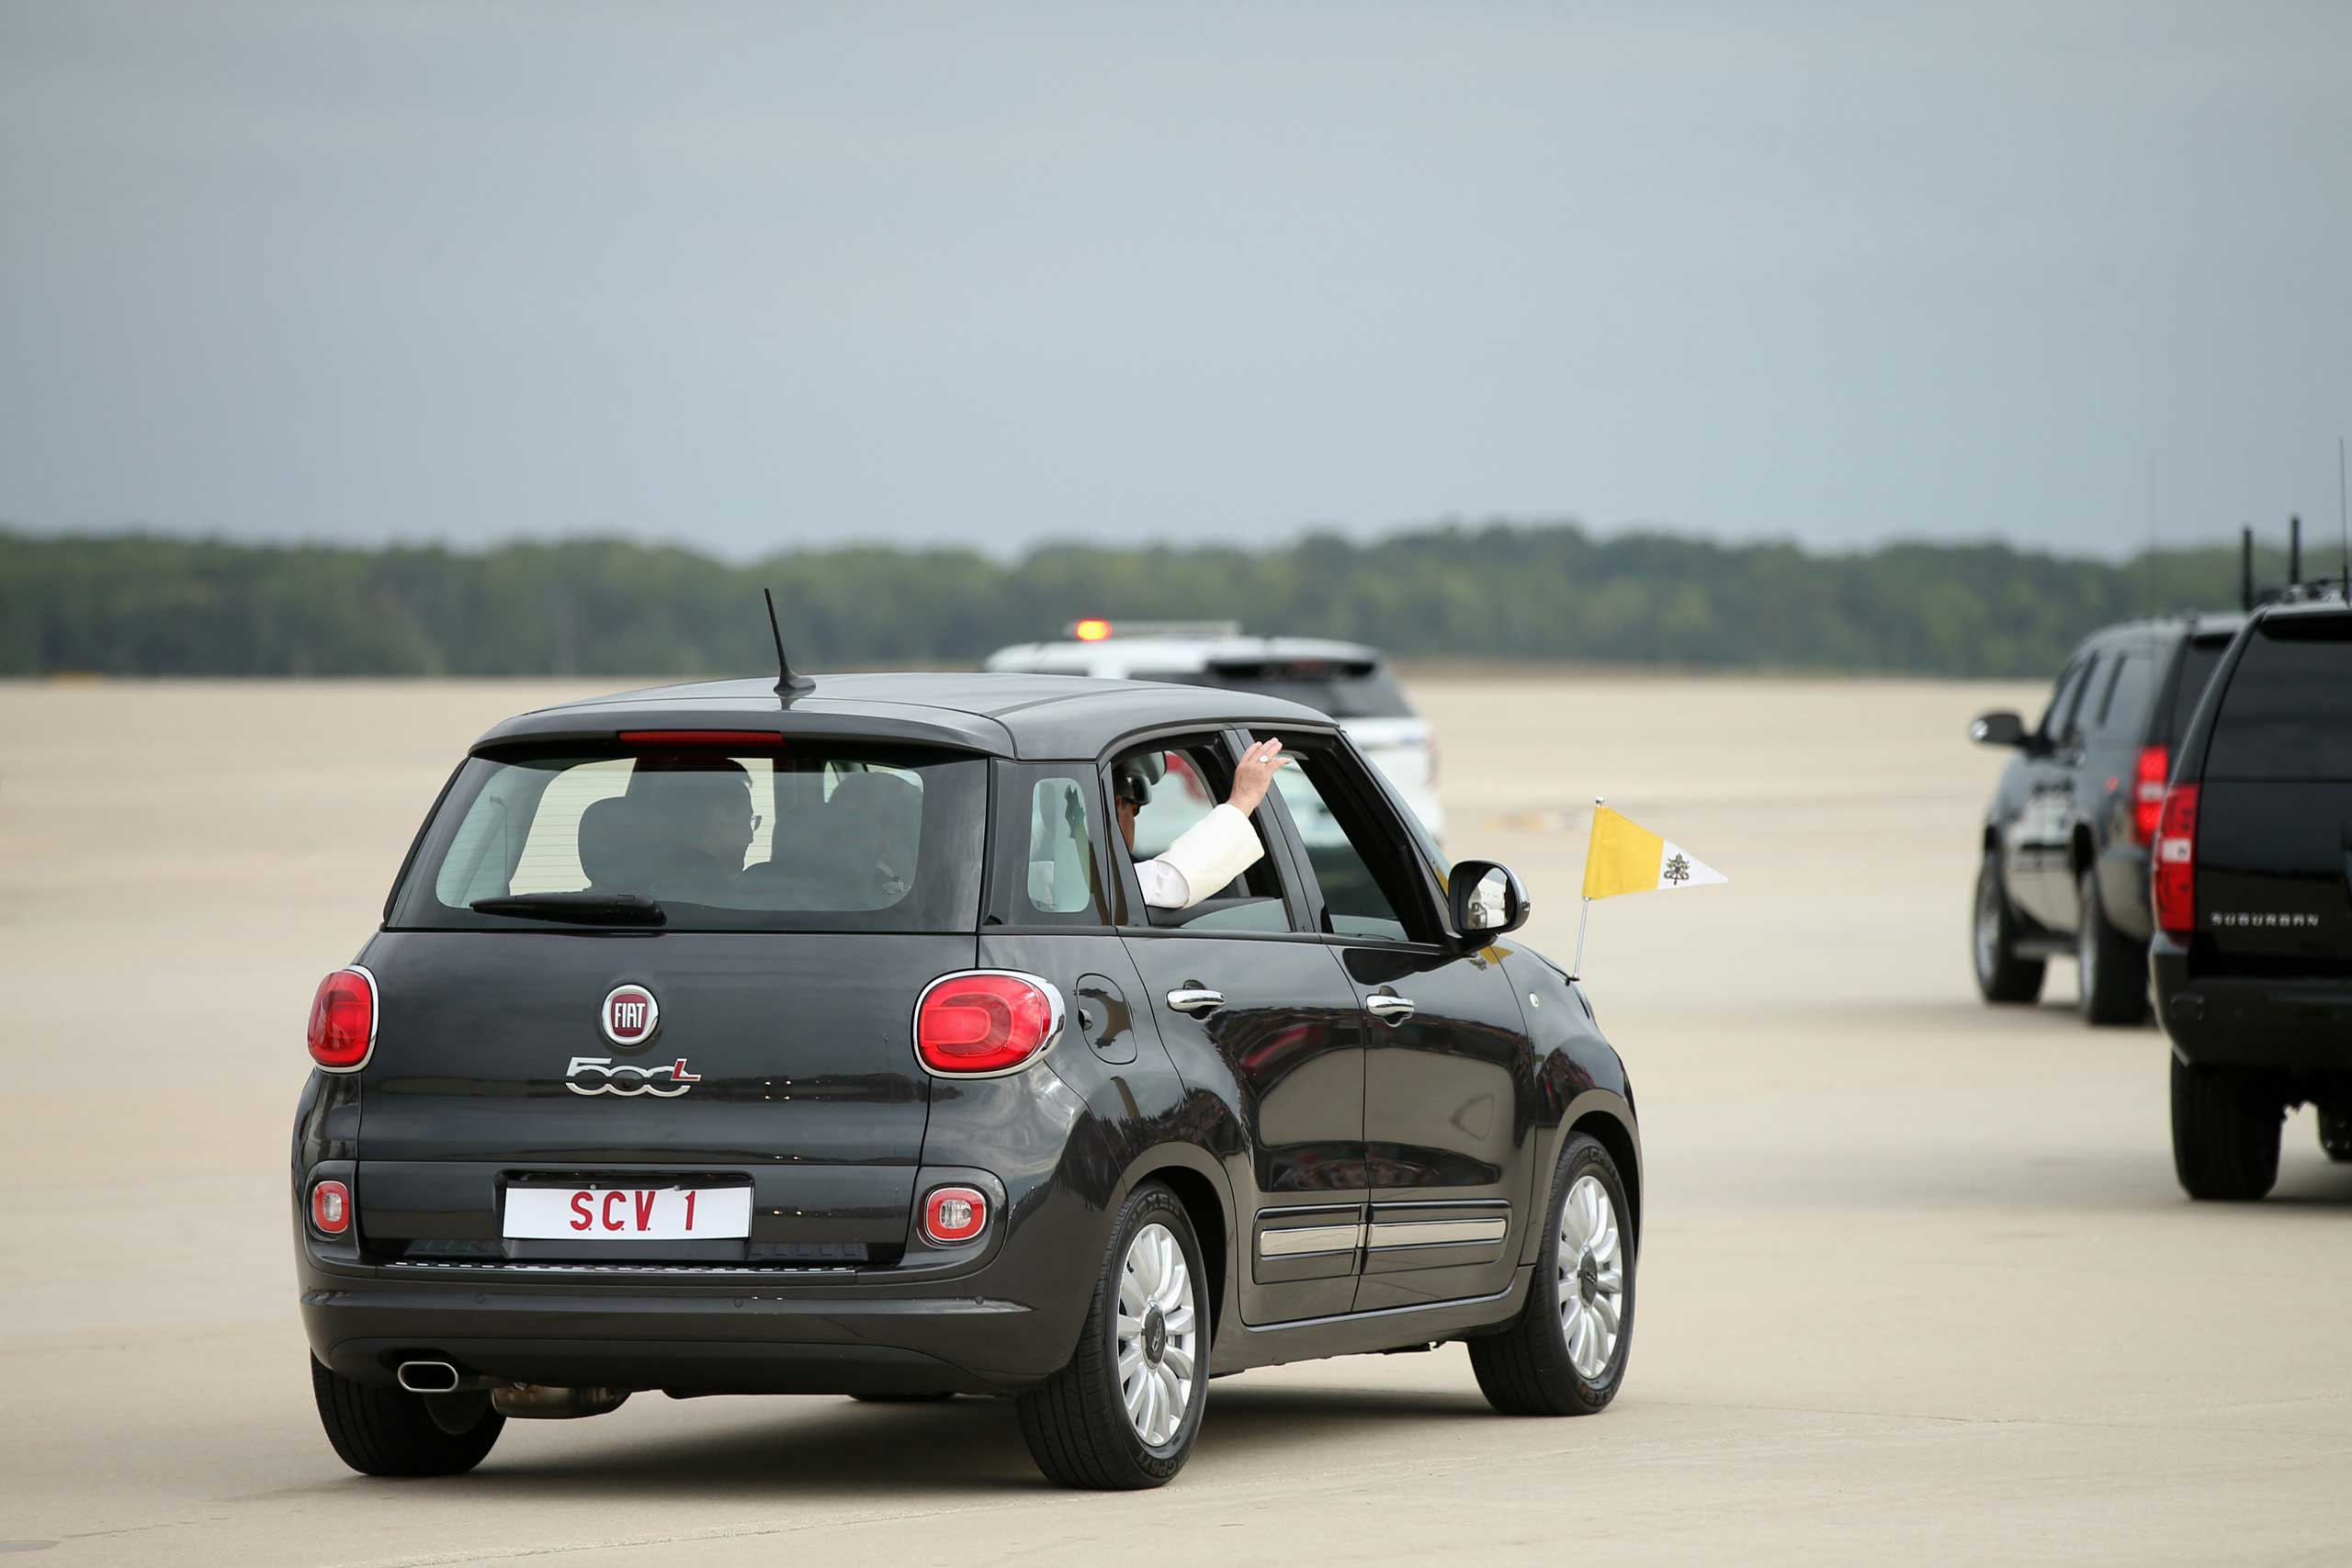 Pope Francis waves from a Fiat 500 as his motorcade departs from Andrews Air Force Base, Md., on Sept. 22, 2015.